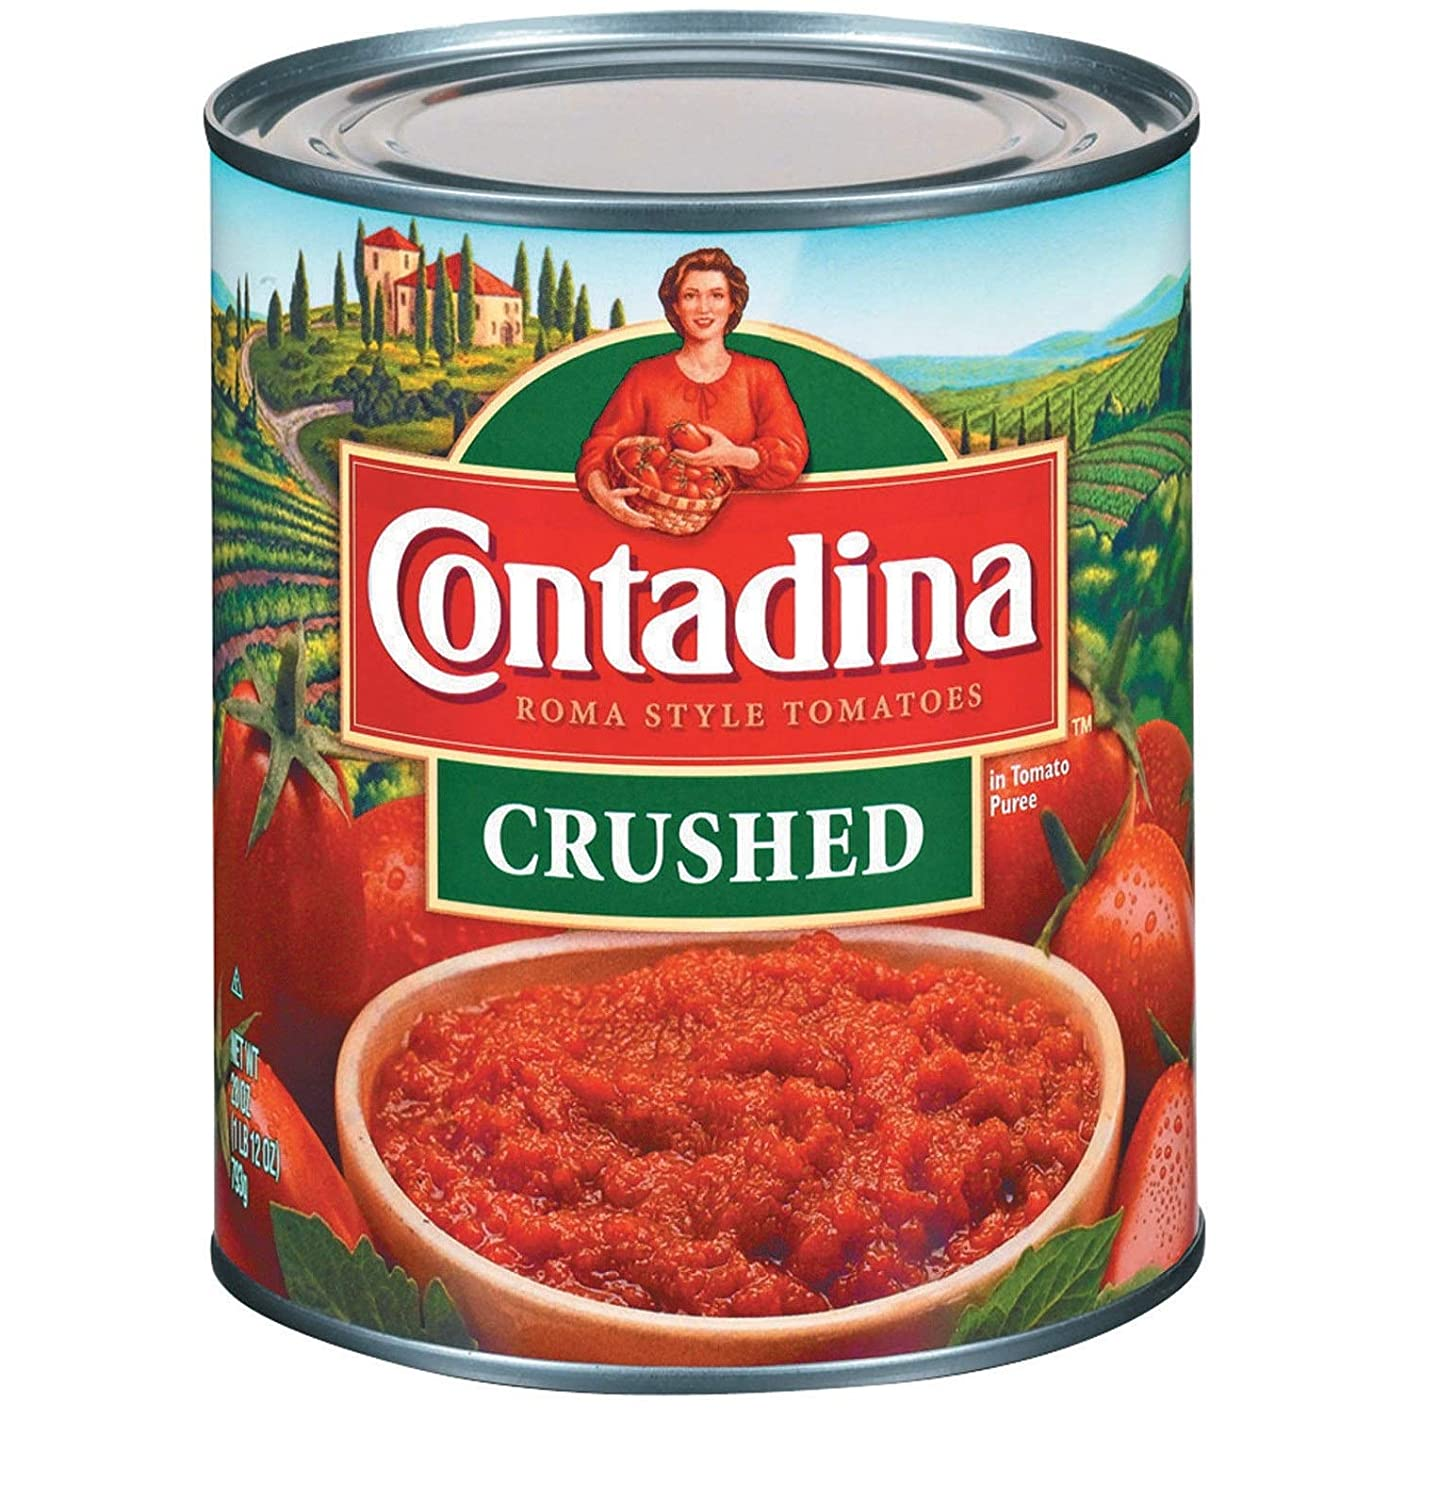 Contadina Roma online shop Sale item Style Crushed Tomatoes oz 28 6 of Pack